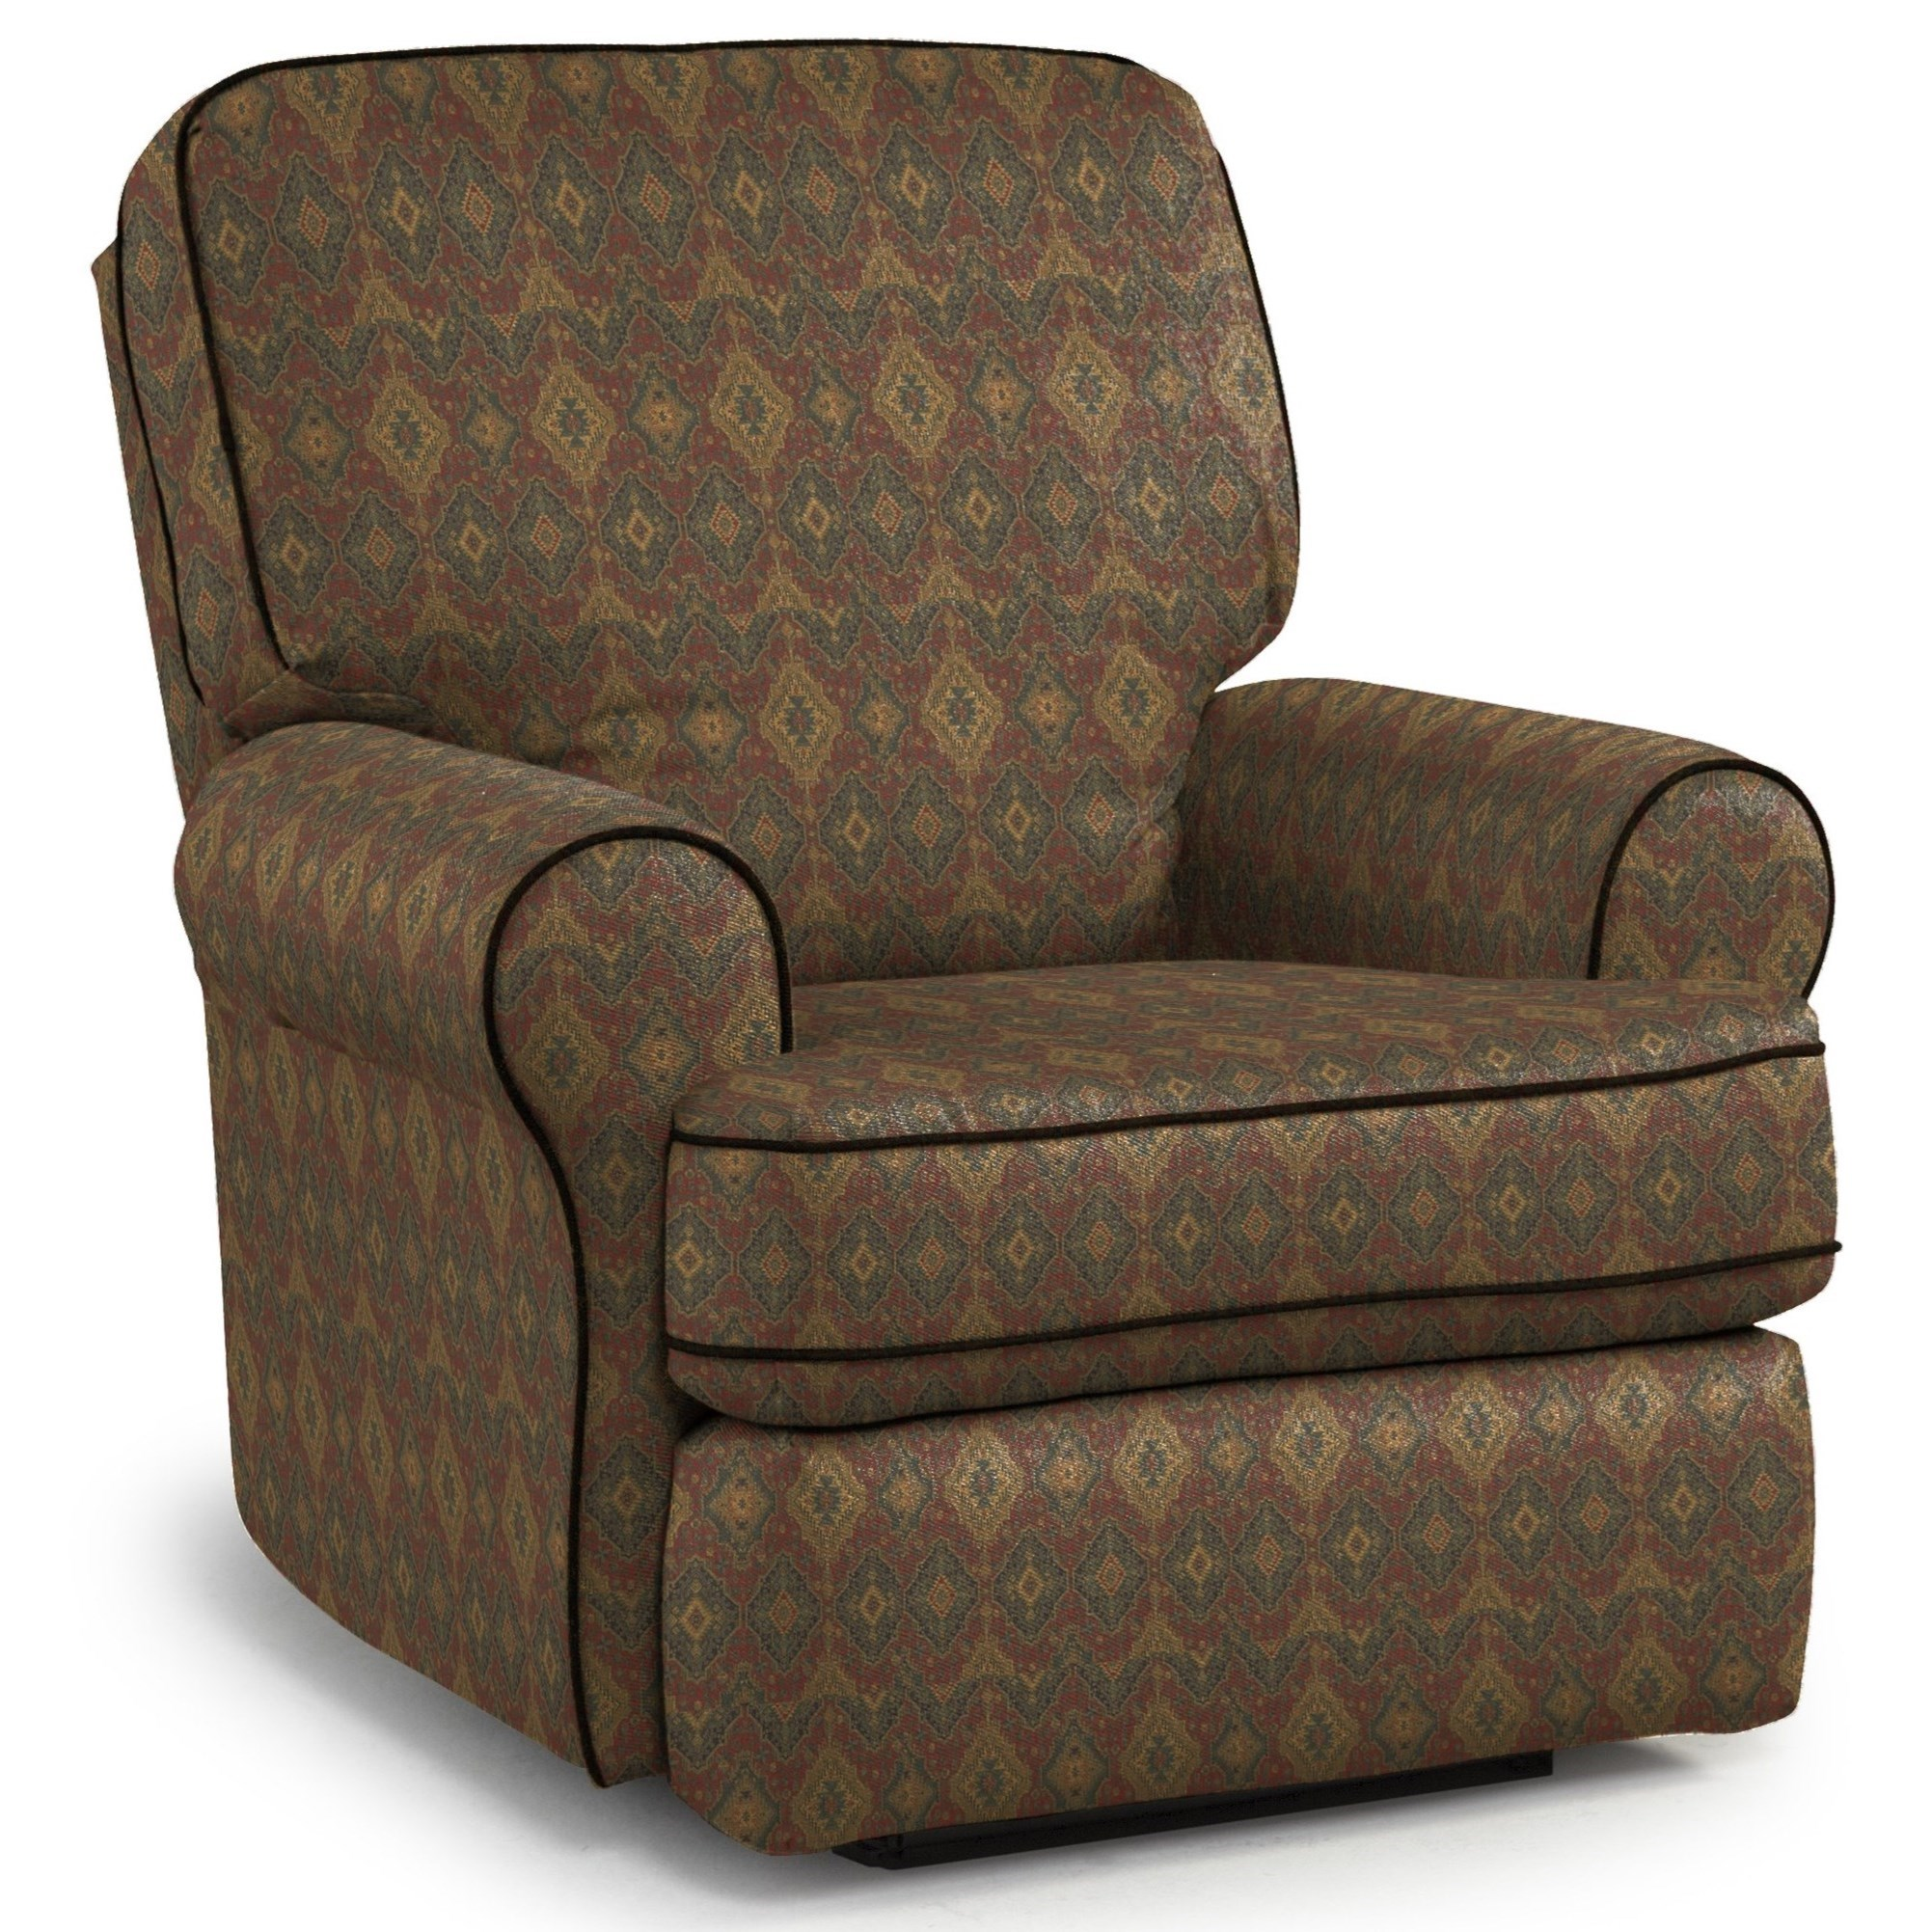 Tryp Power Swivel Glider Recliner by Best Home Furnishings at Corner Furniture